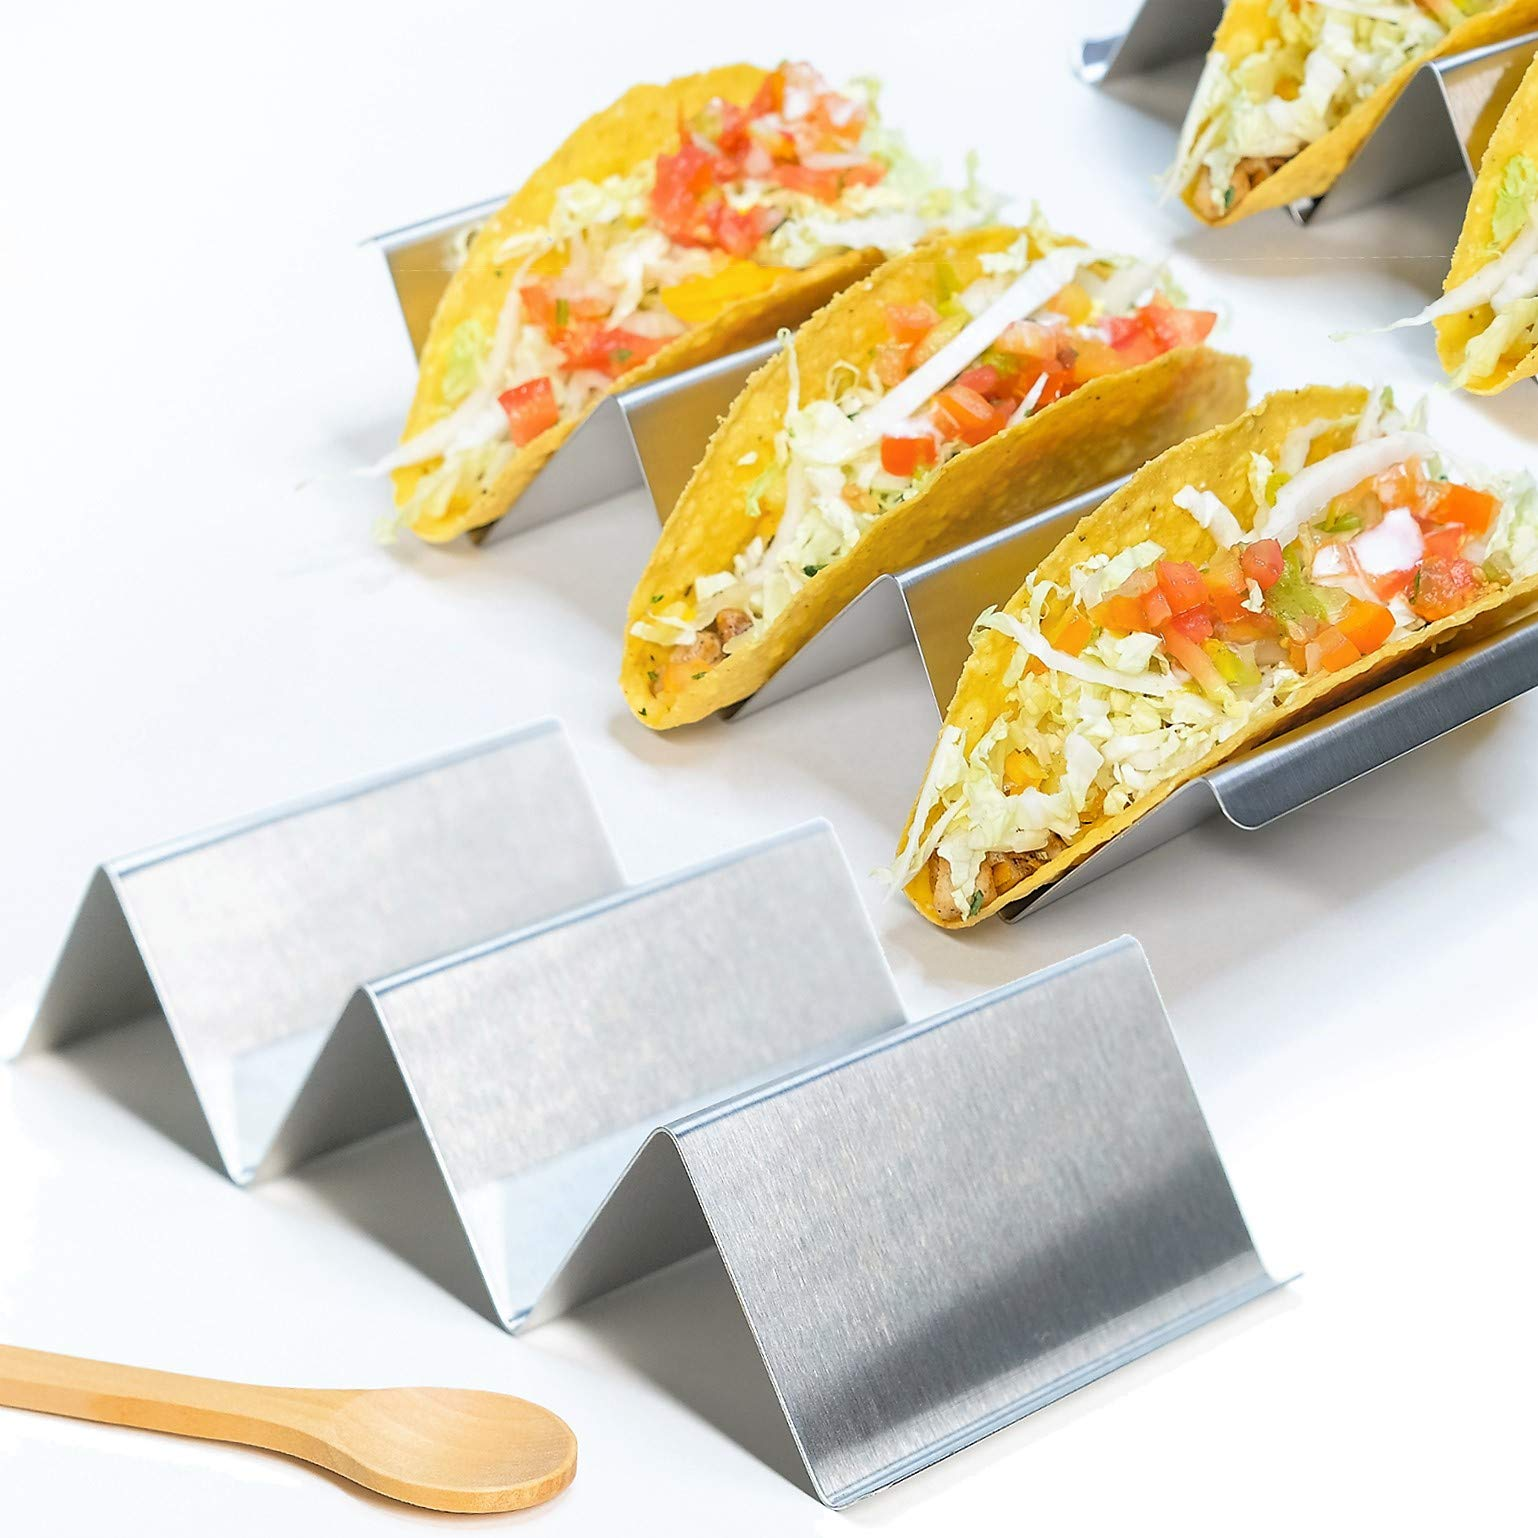 Taco Stand Set of 4 and FREE Serving Spoon - Stainless Steel Taco Rack - Professional Taco Holder And Perfect for Taco Nights - Oven, Grill and Dishwasher Safe by KUCHINA